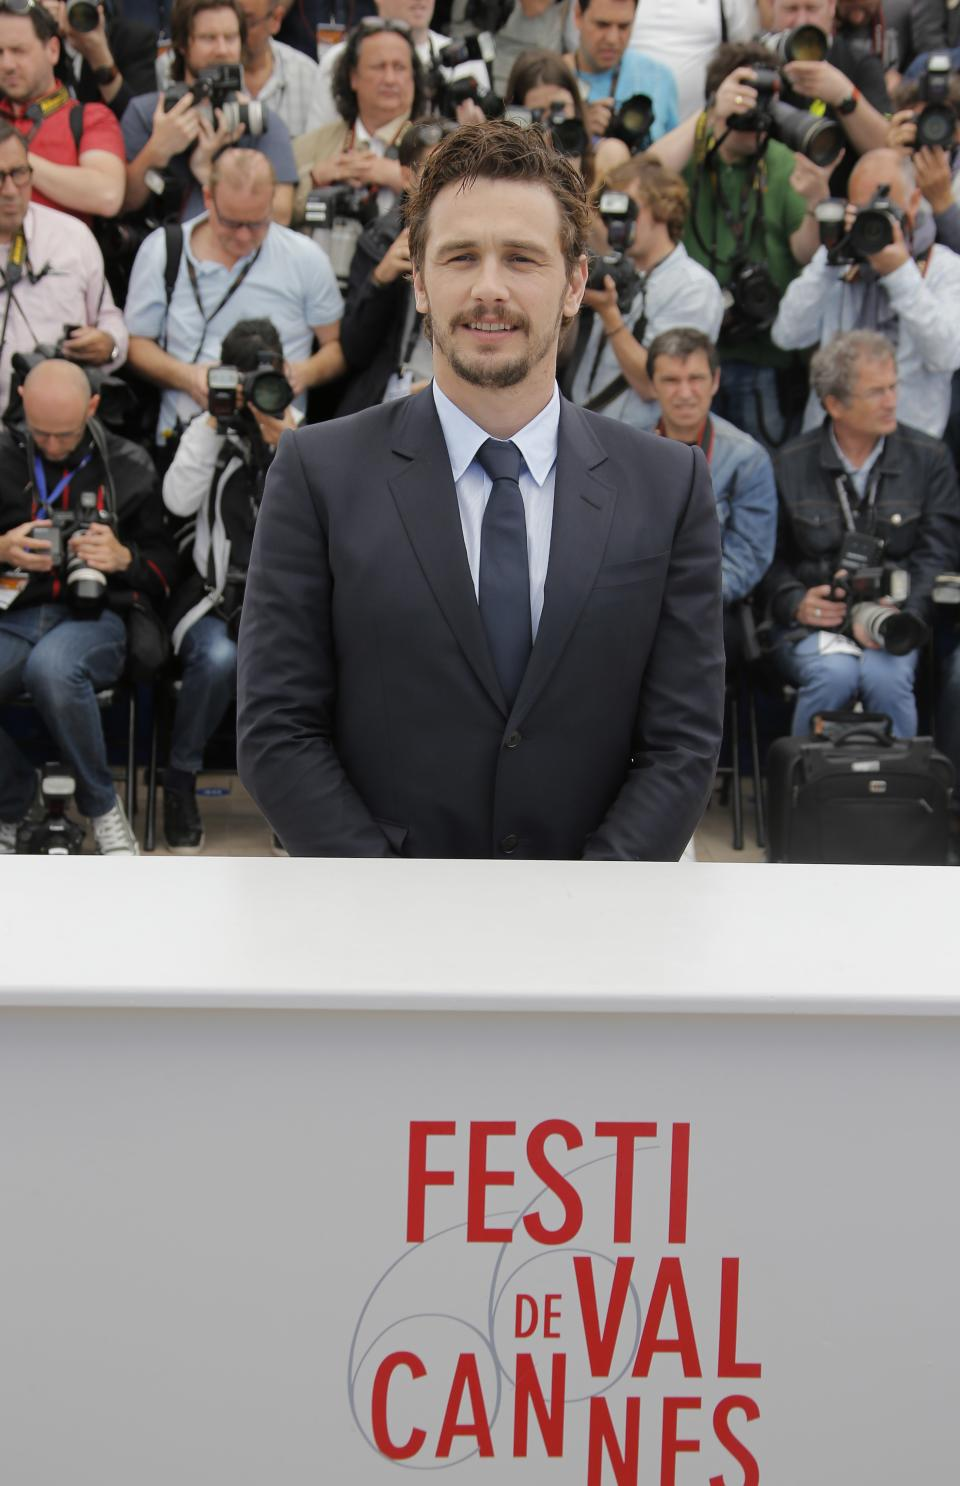 Director James Franco poses for photographers during a photo call for the film As I Lay Dying at the 66th international film festival, in Cannes, southern France, Monday, May 20, 2013. (AP Photo/Lionel Cironneau)